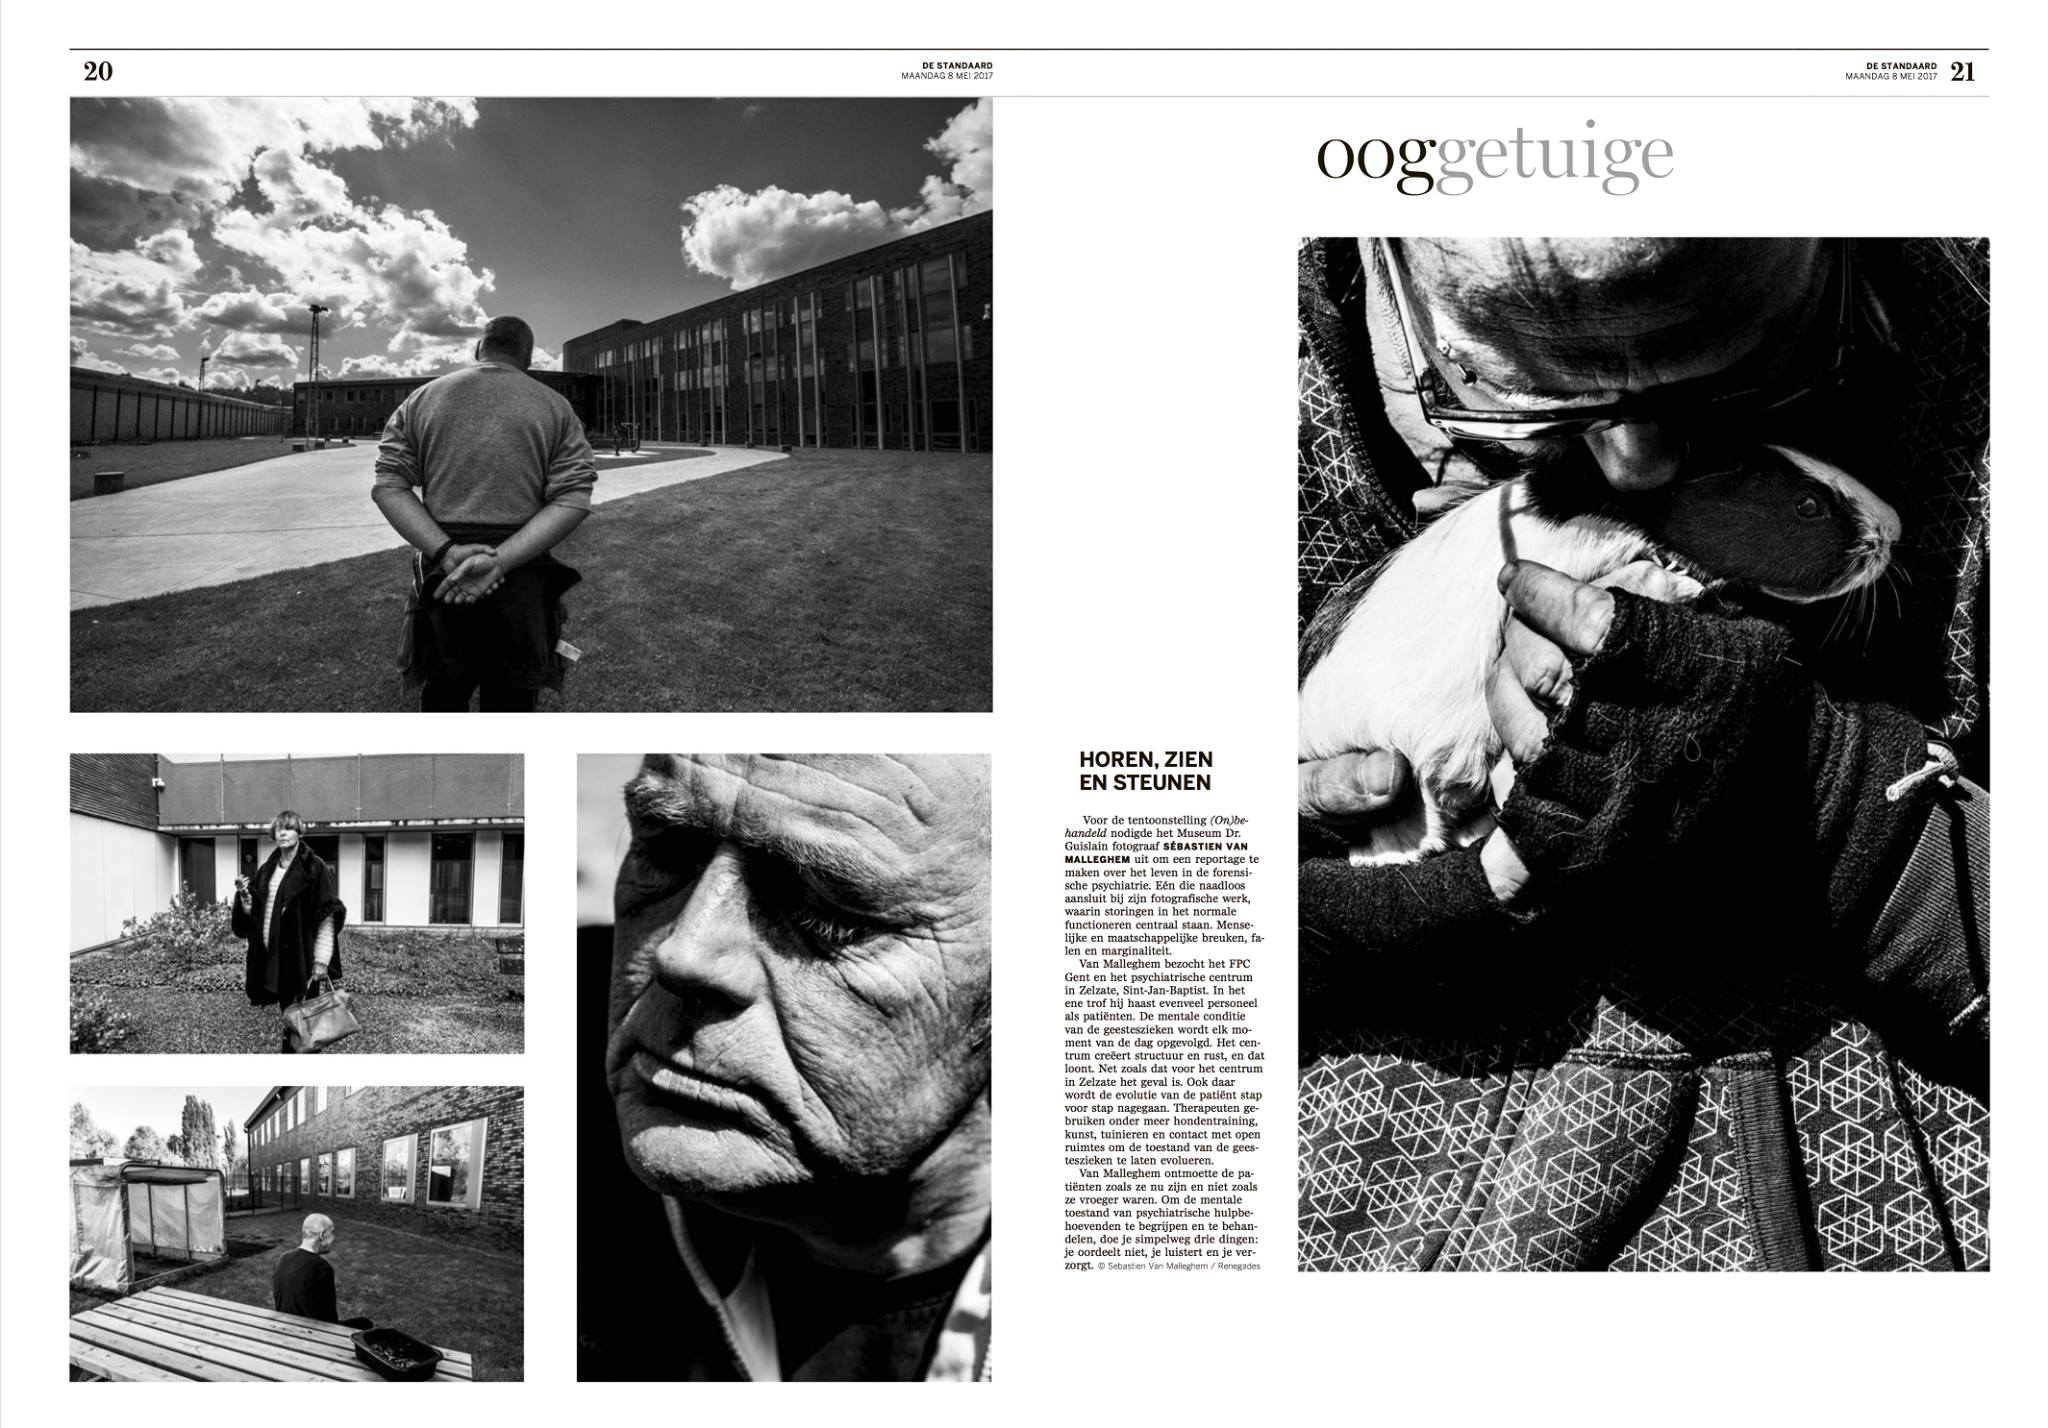 Asylum double page for De Standaard